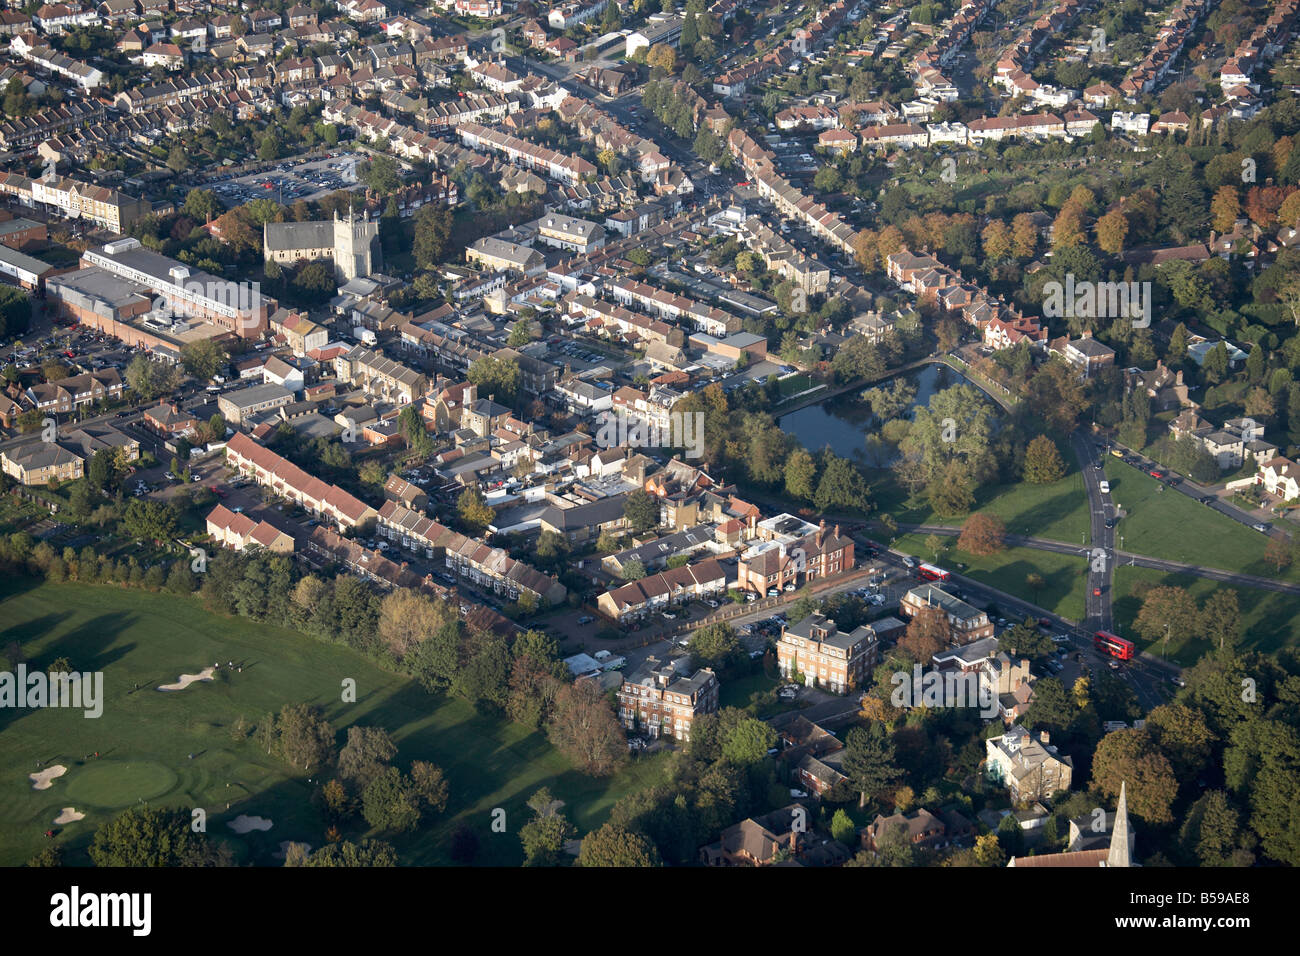 Aerial view north east of Chiselhurst High Street town centre recreation ground lake suburban houses Greater London - Stock Image